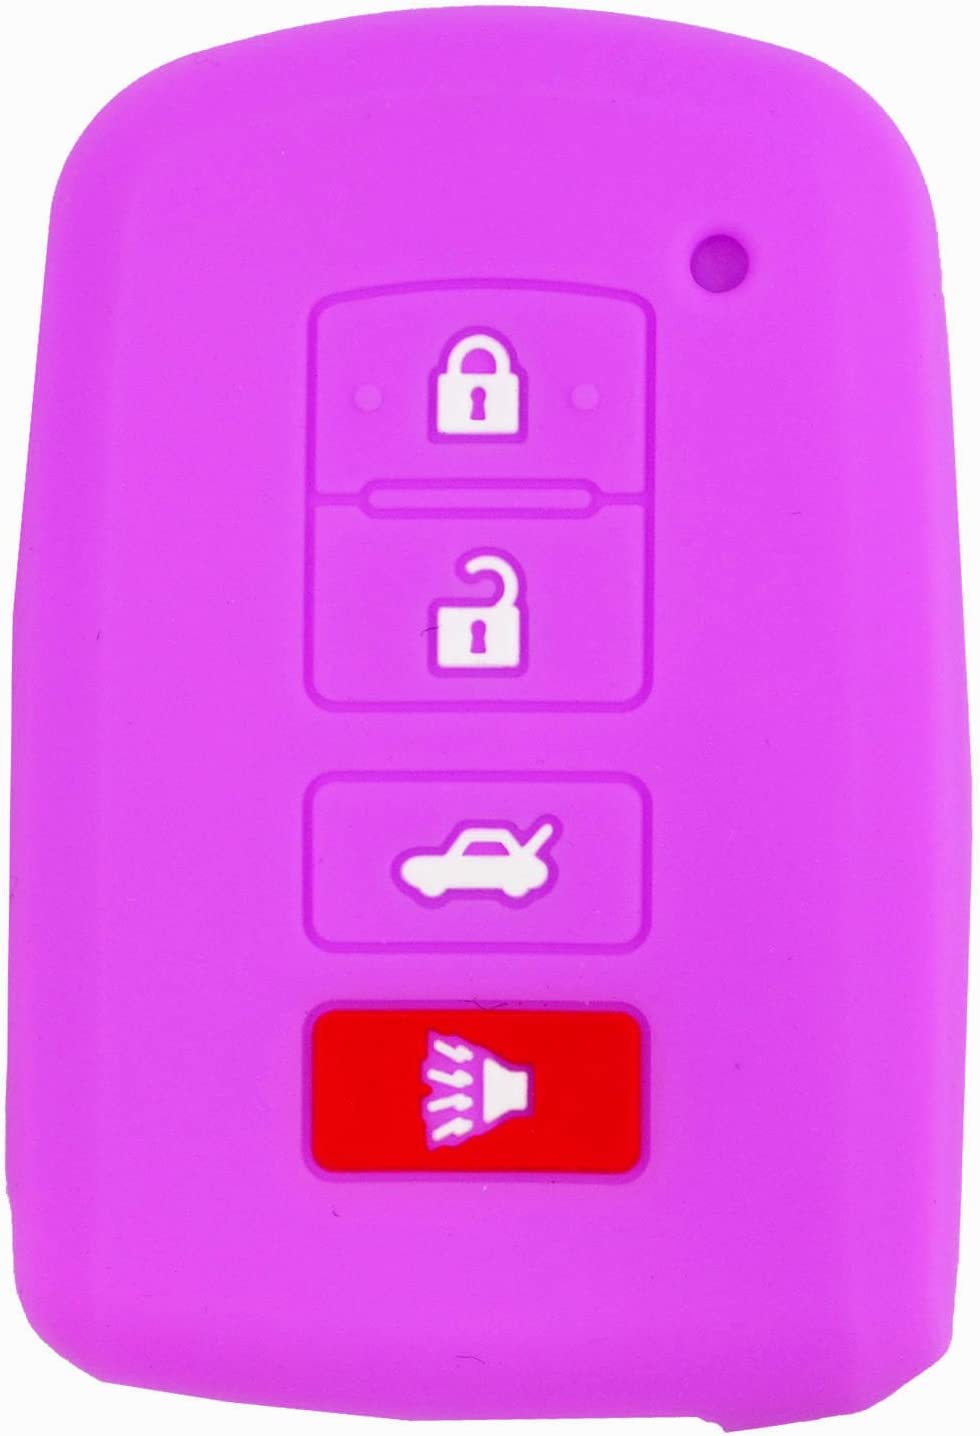 qualitykeylessplus Blue Silicone//Rubber Protective Cover for 4 Button Toyota Remotes FCC ID HYQ14FBA with Free KEYTAG